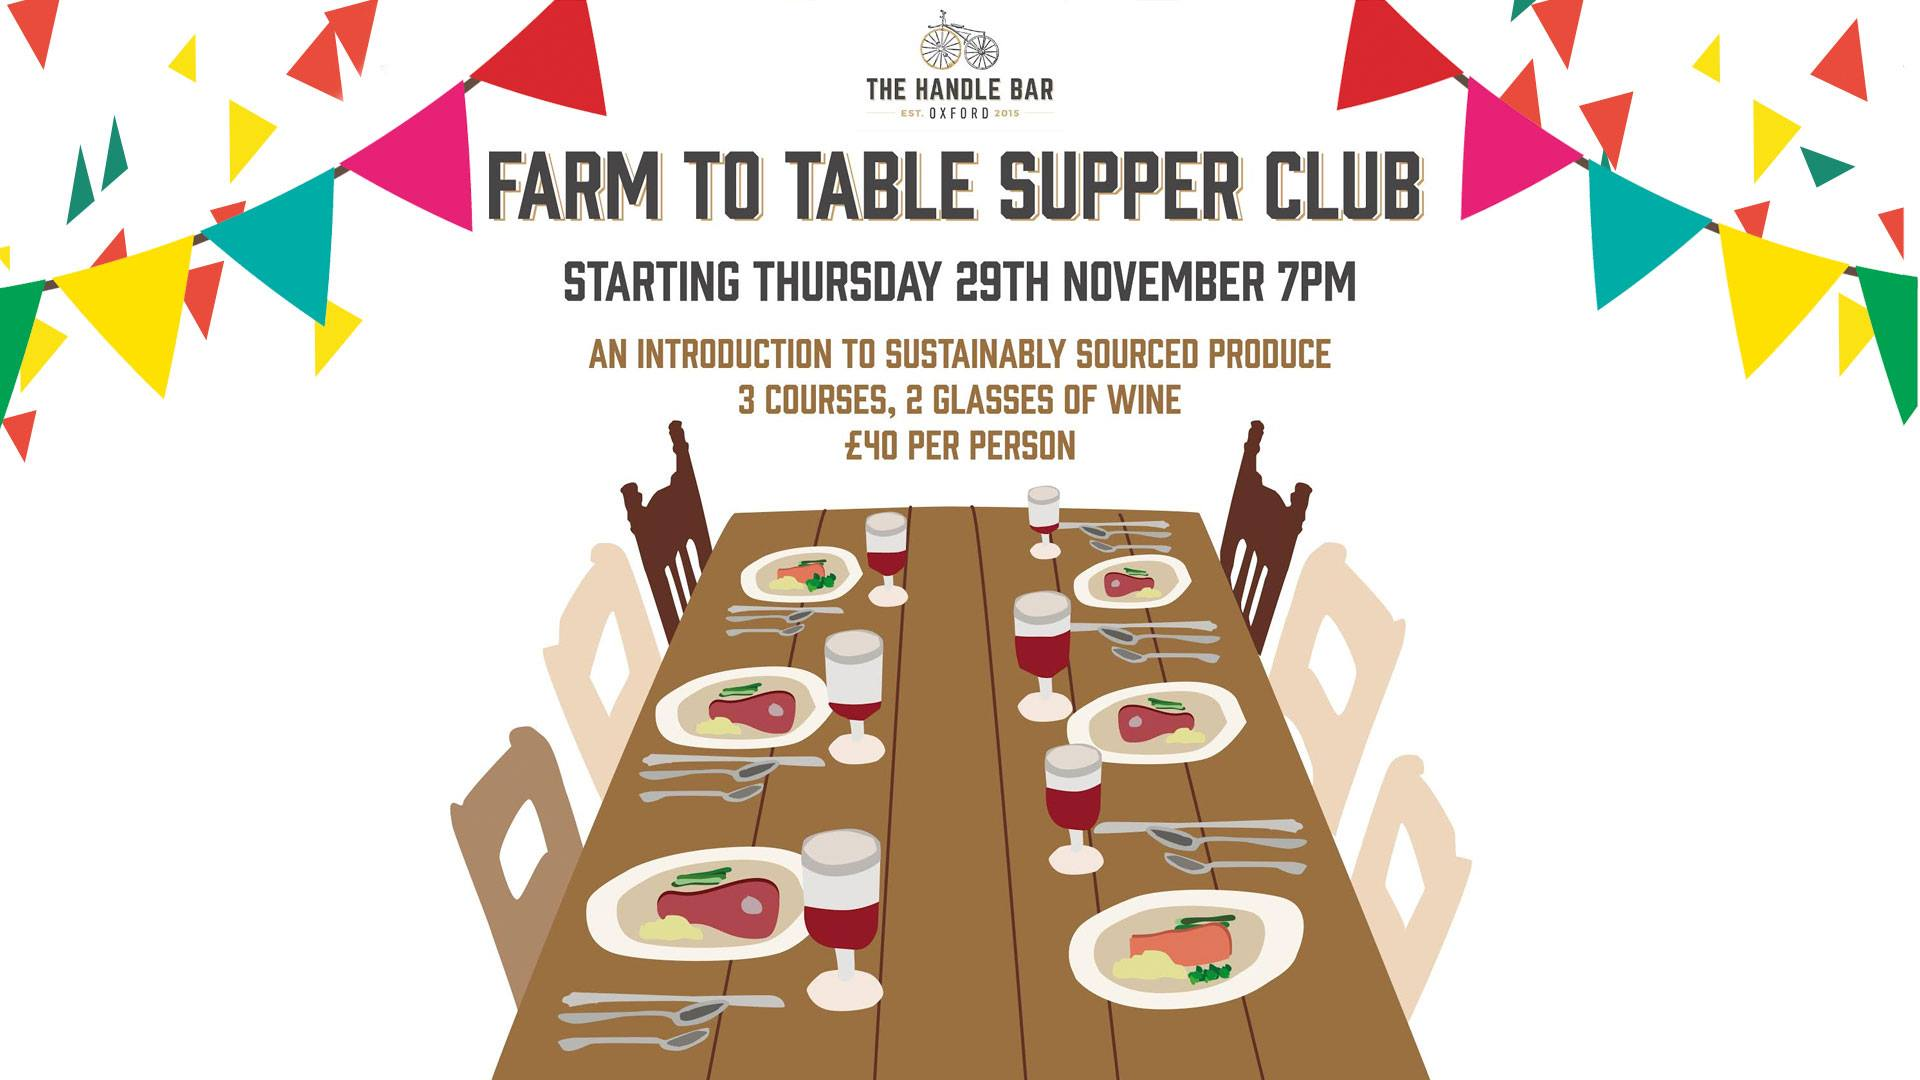 Handle Bar Farm to Table Supper Club